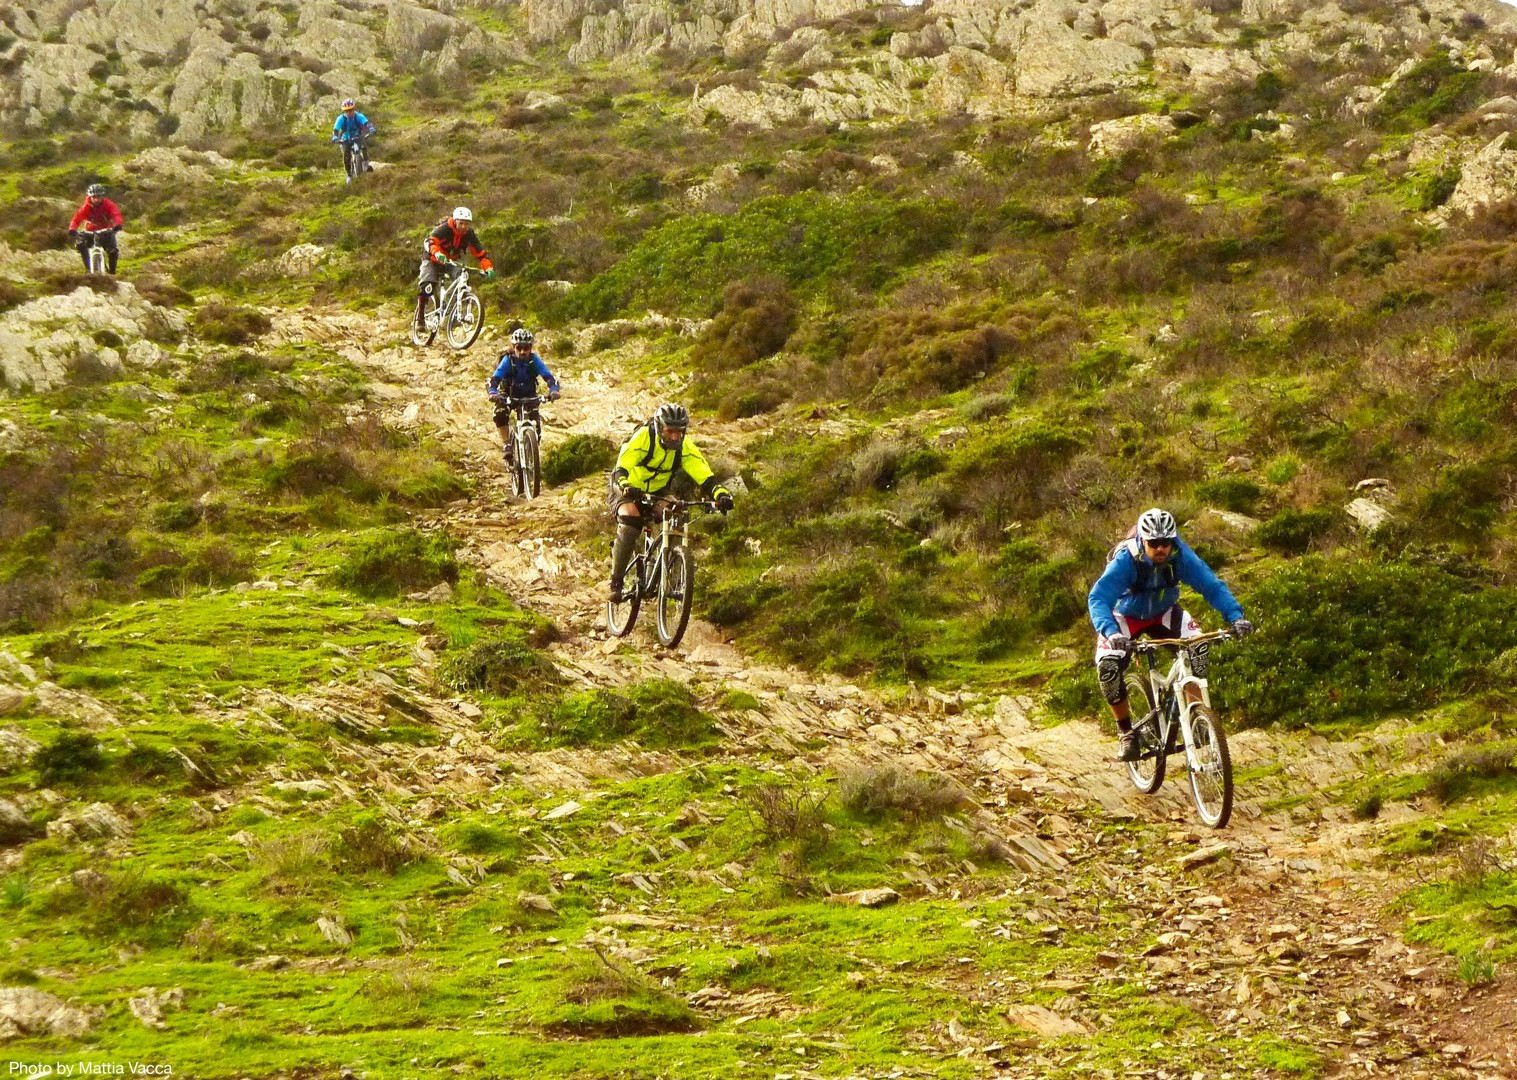 mountain-bike-holiday-enduro-in-italy-sardinia.jpg - Sardinia - Sardinian Enduro - Mountain Biking